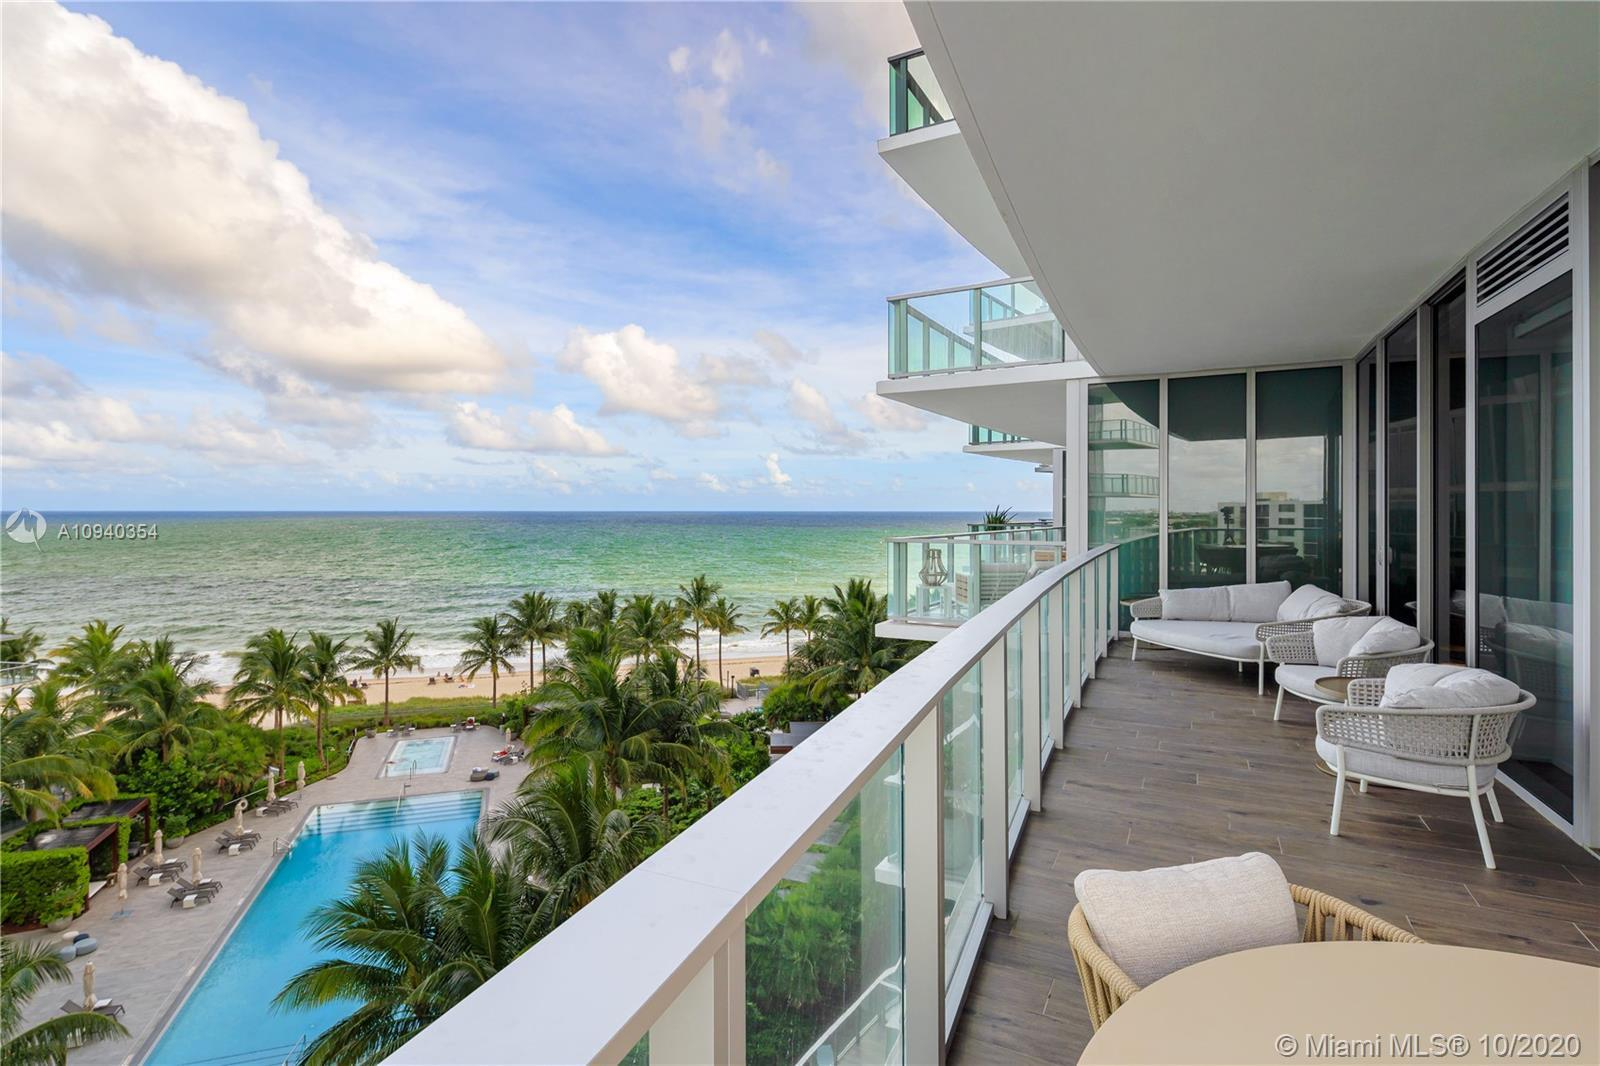 From the pages of a magazine, live on the ocean in this extraordinary 6th floor flow through oceanfr